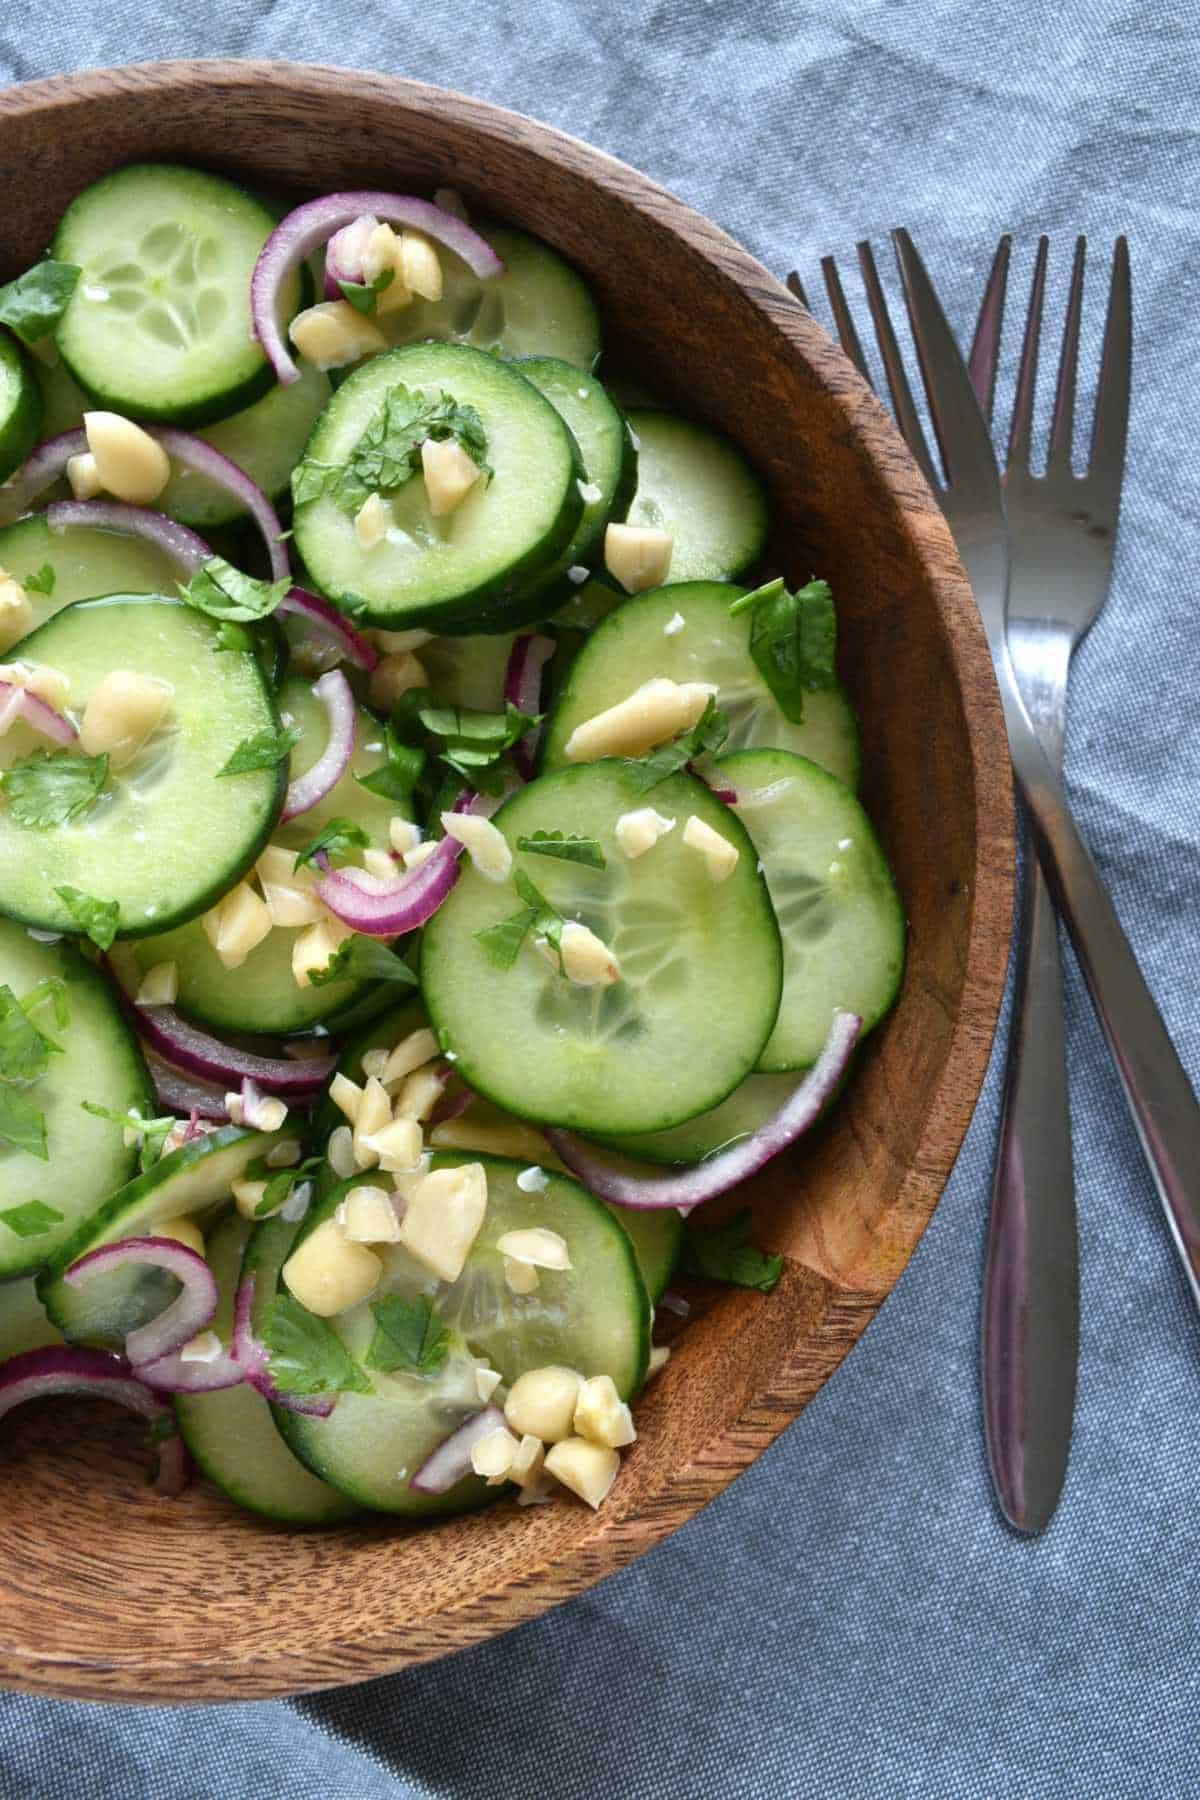 Cucumber salad in a wooden bowl with two forks on the side.